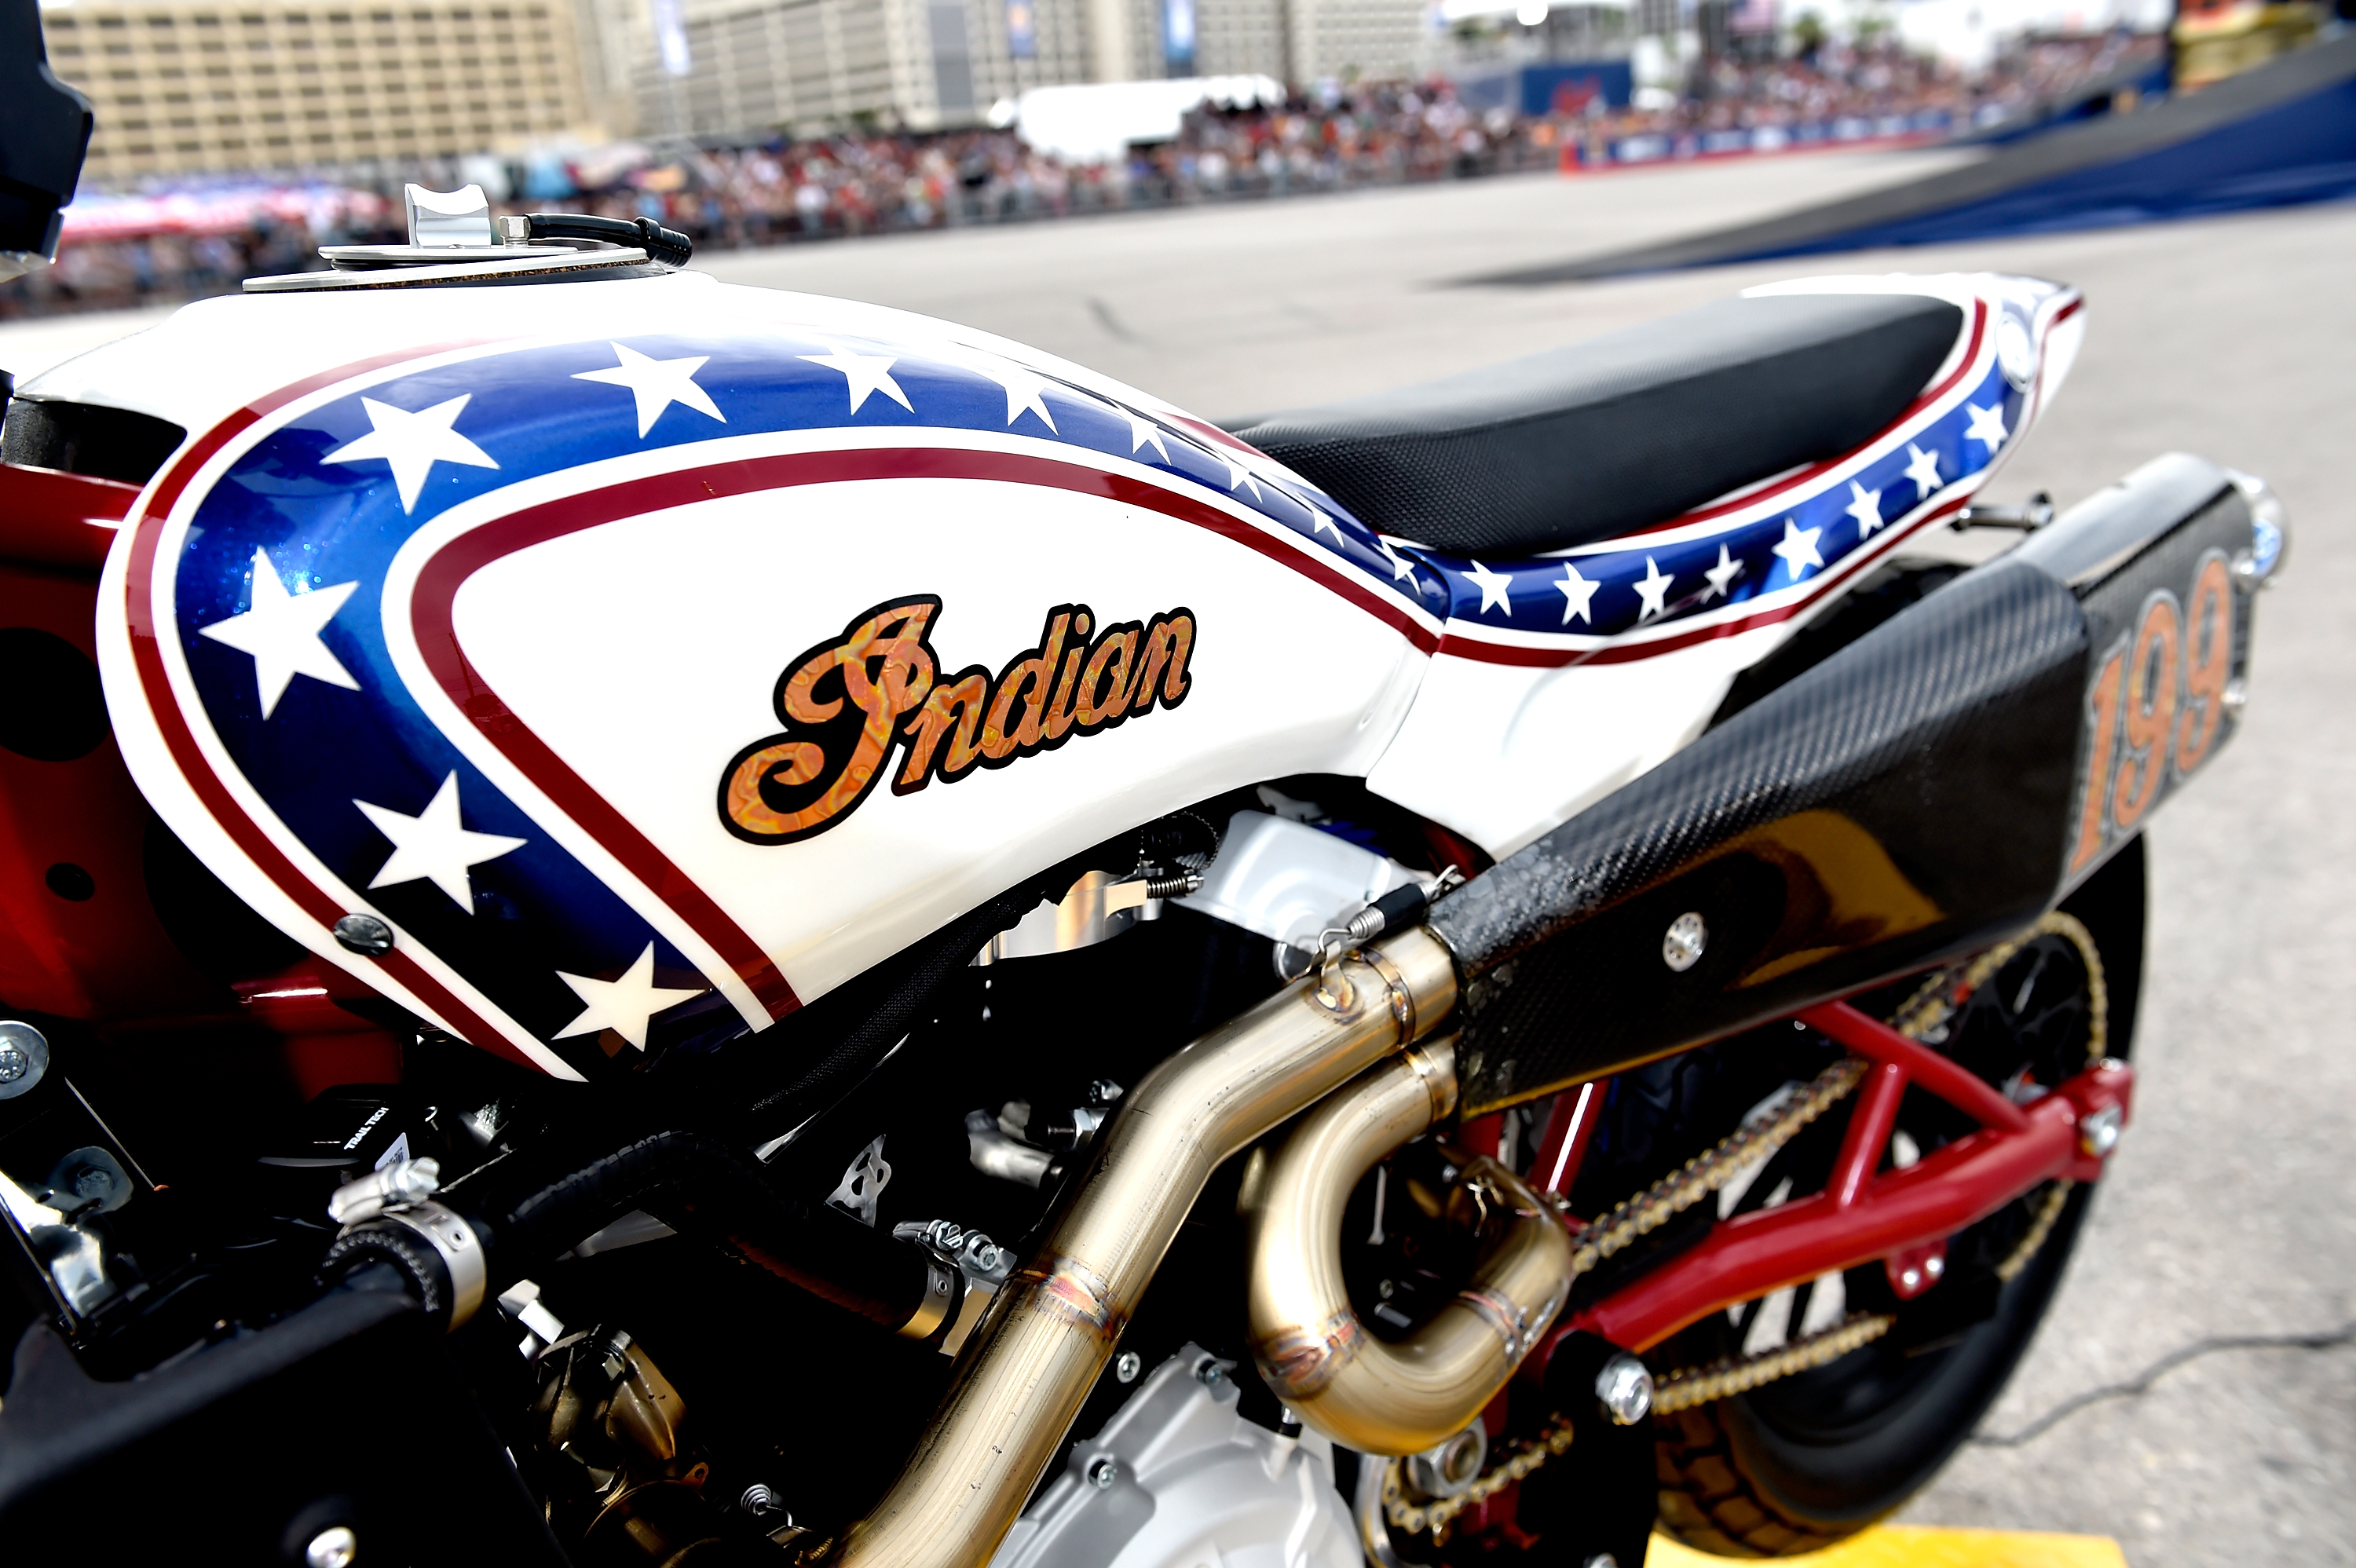 Travis-Pastrana-Evel-Knievel-Indian-Jump-b344d4f6